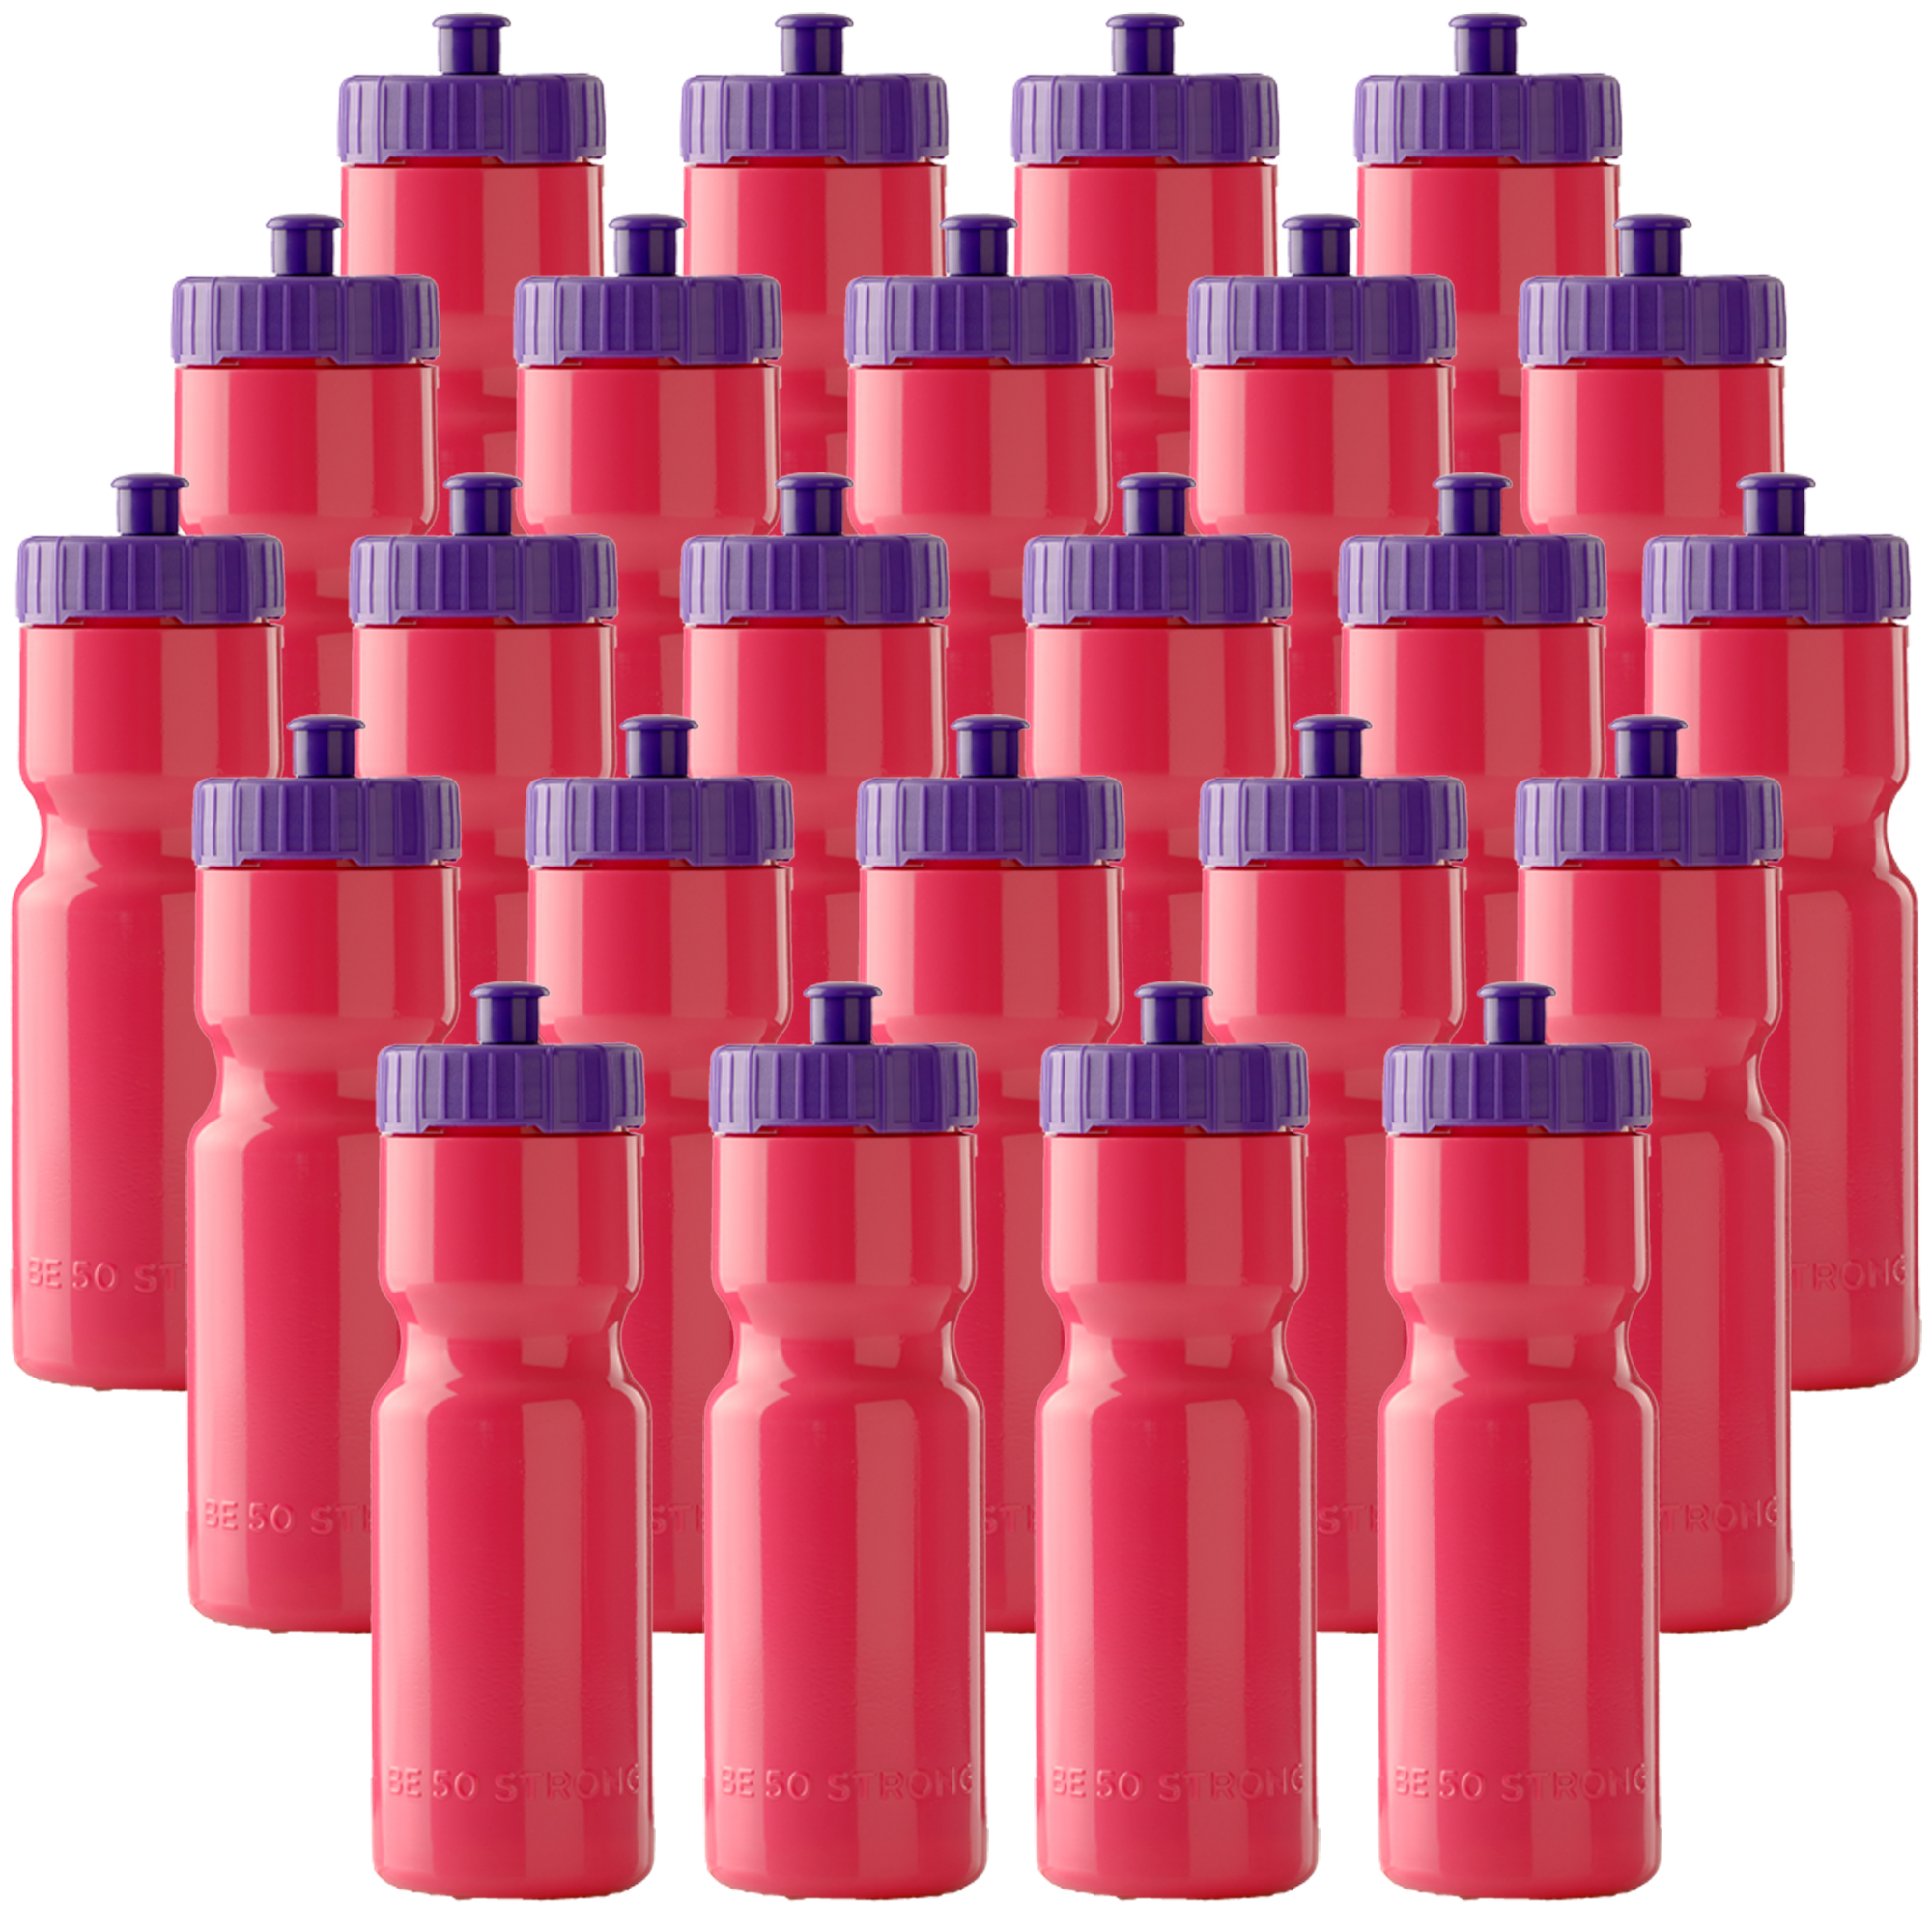 50 Strong Sports Squeeze Water Bottle Bulk Pack - 24 Bottles - 22 oz. BPA Free